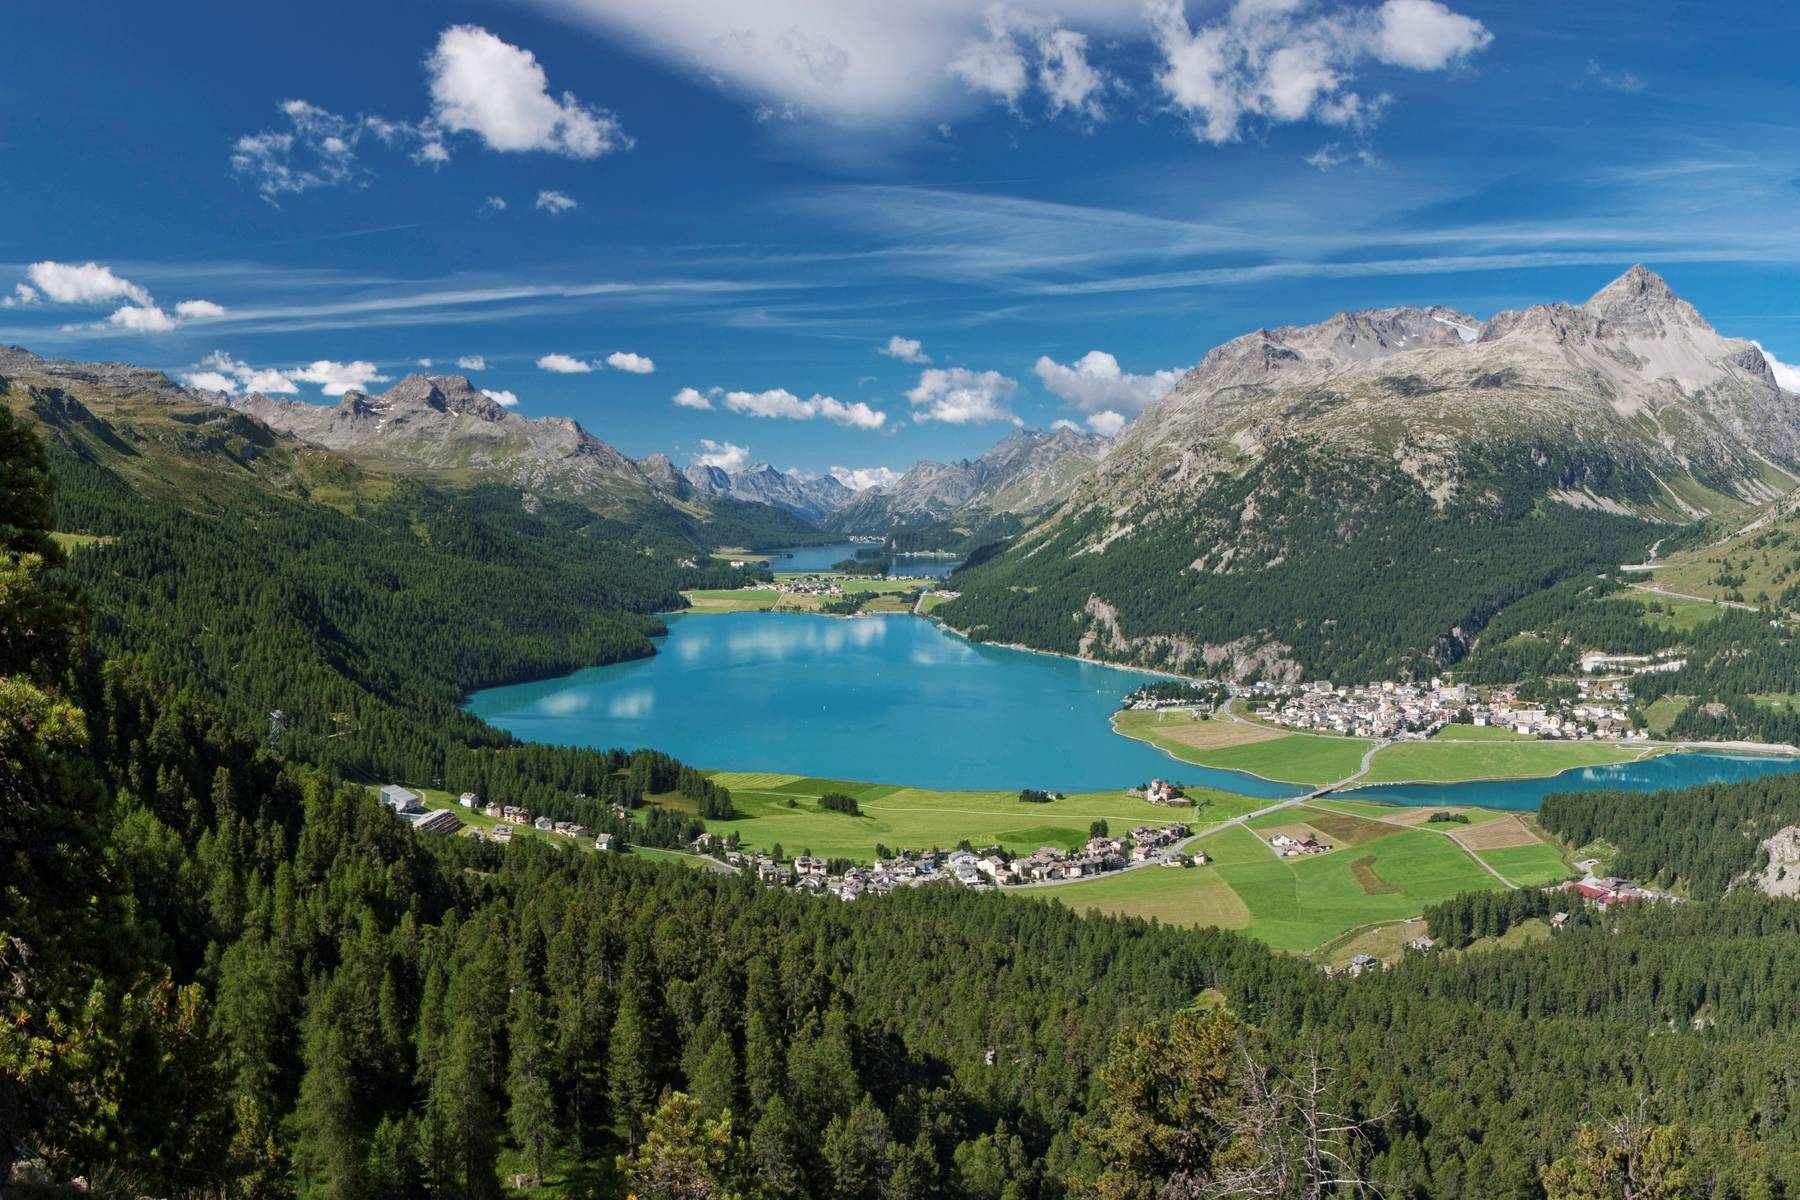 The view of Lake St. Moritz from Badrutt's Palace in the Swiss Alps.